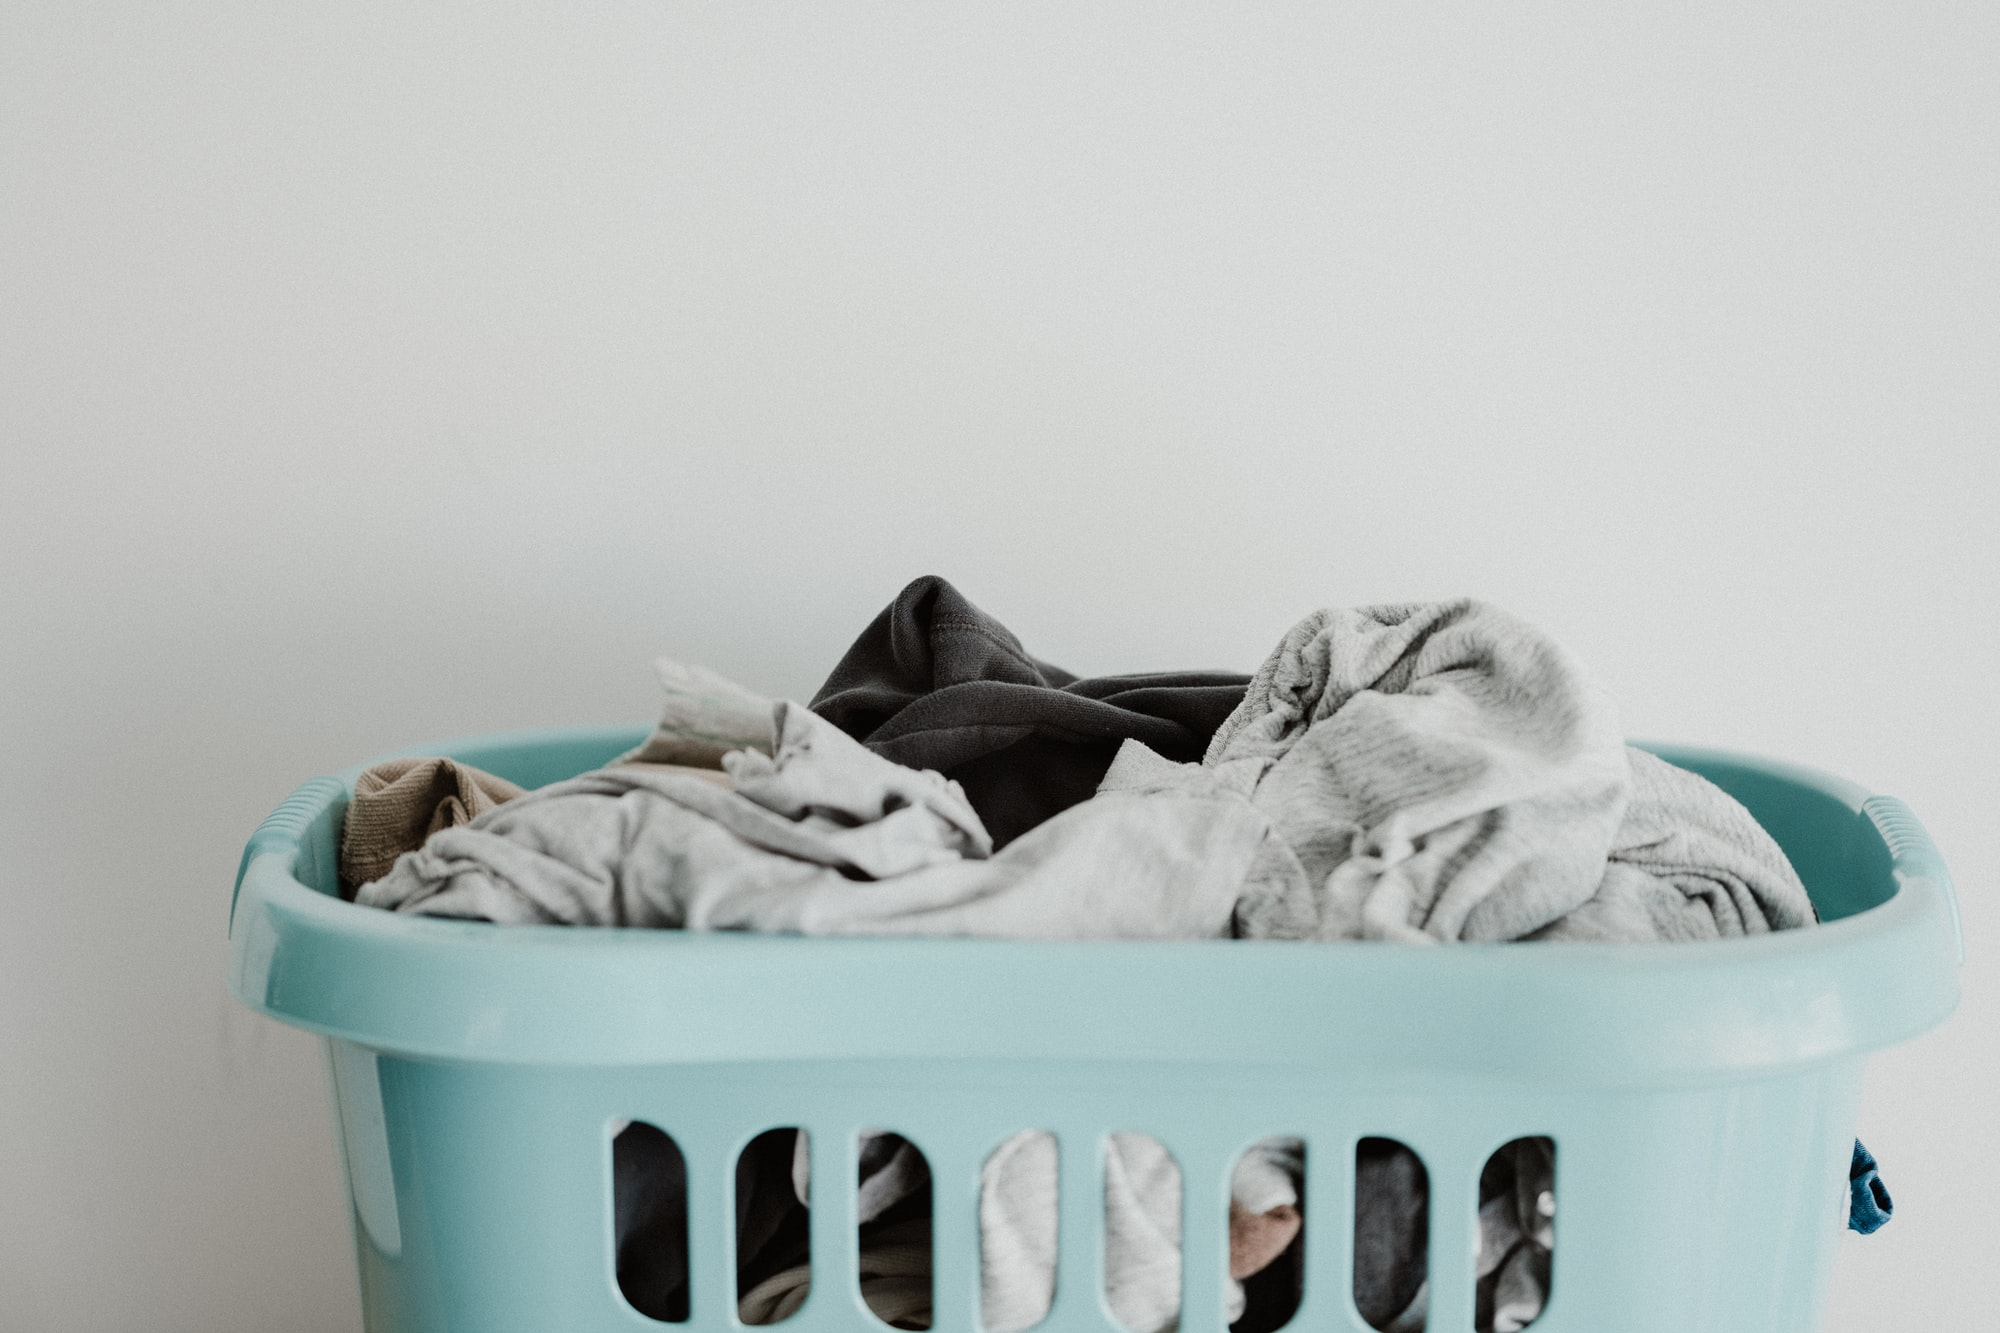 It shouldn't cost me a fortune to do laundry